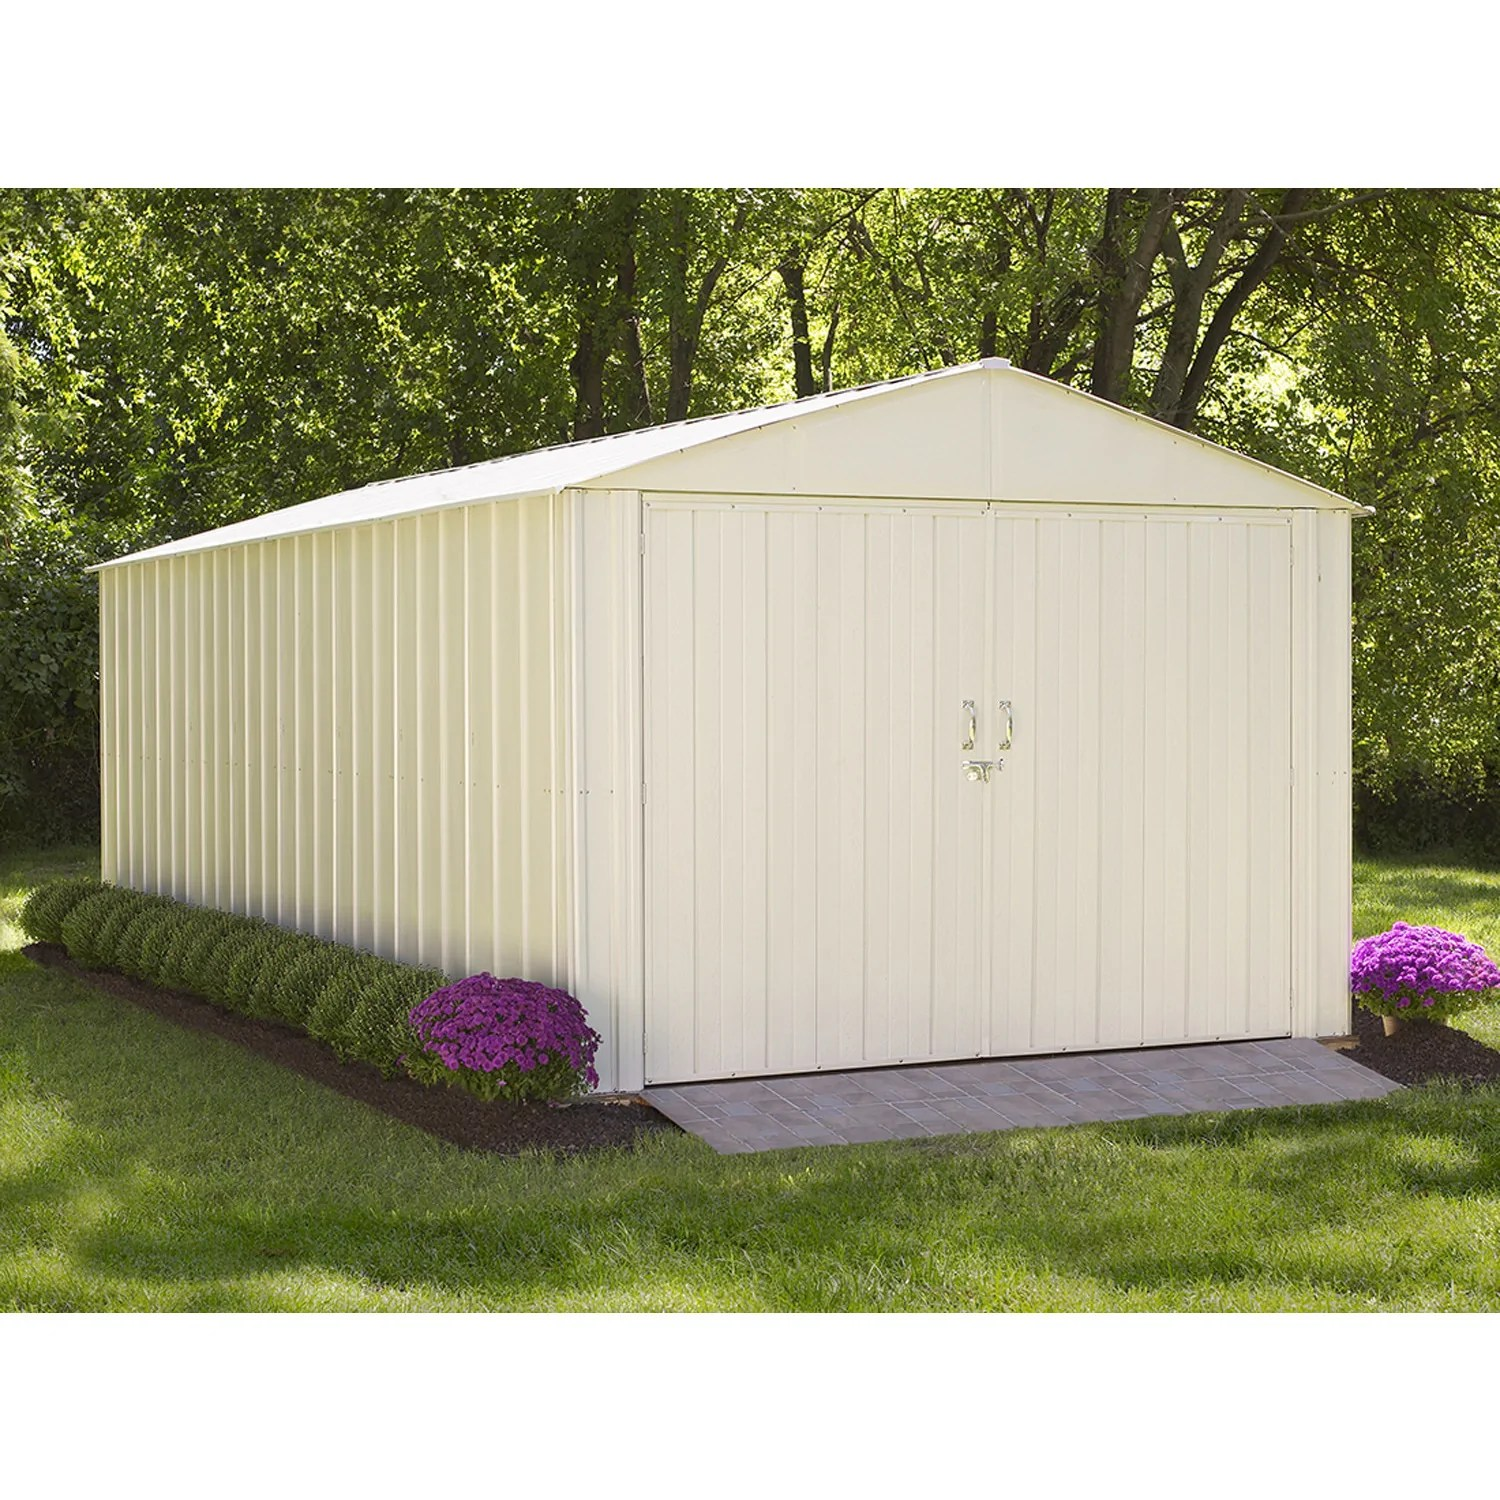 Buy Doors Online Commander Shed 10x20 Steel Extra Wide Swing Doors